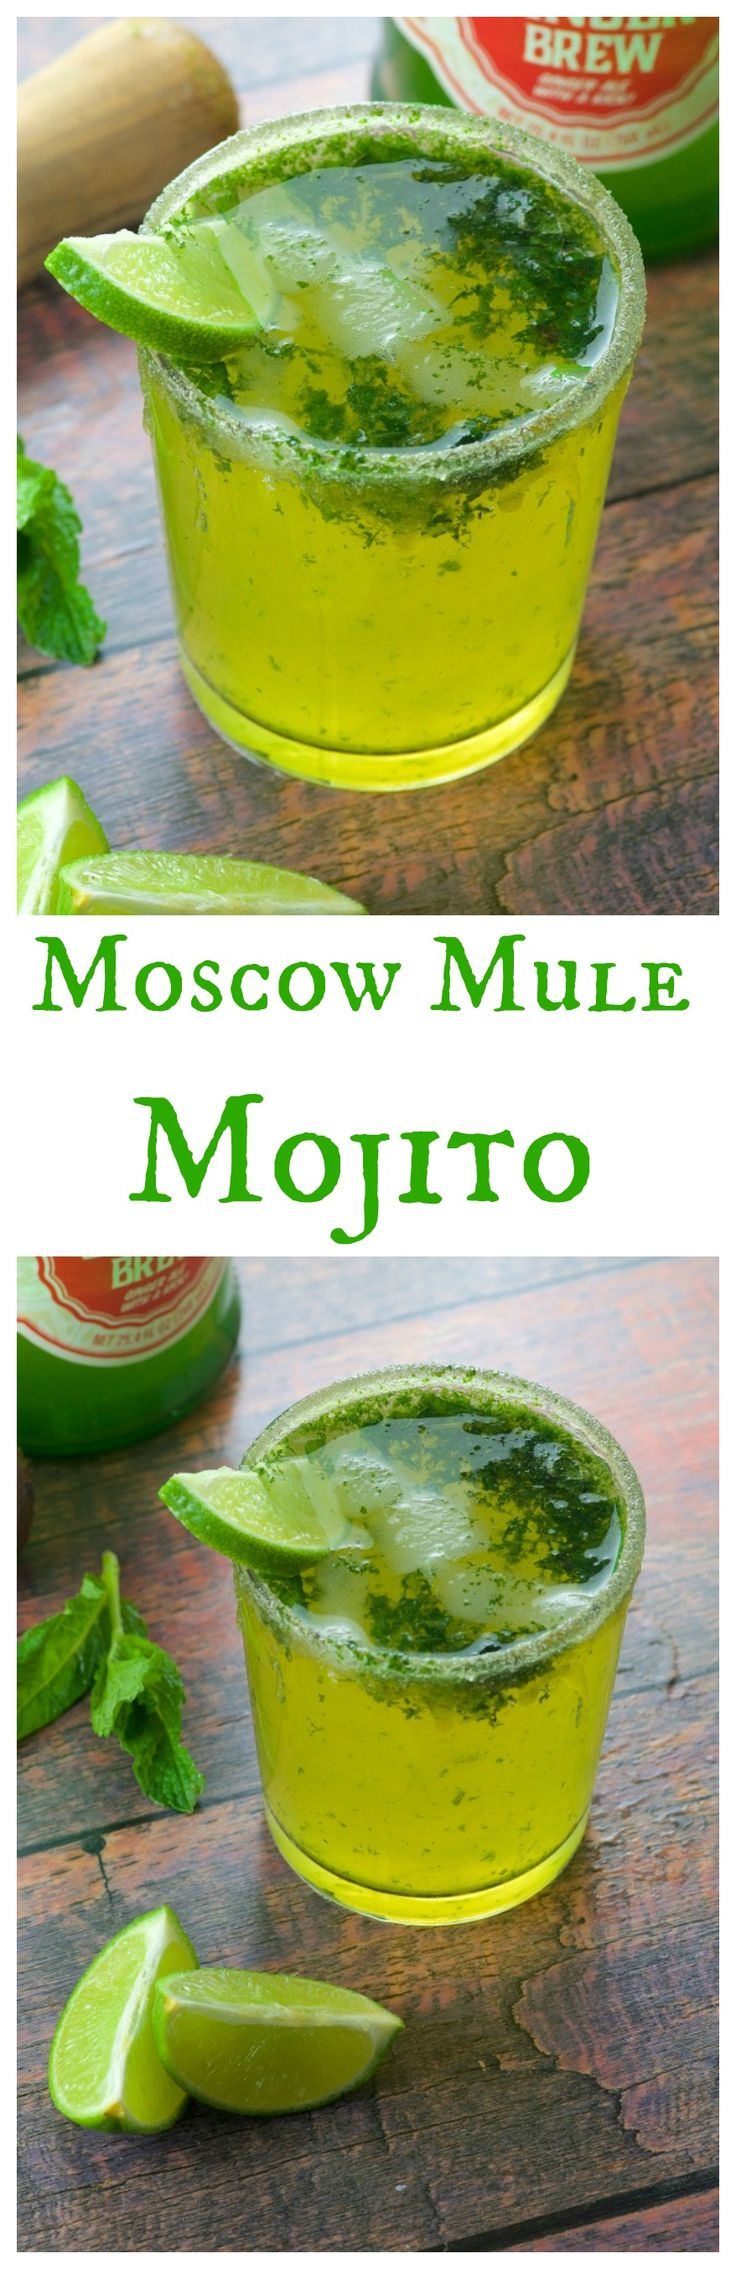 Ginger Beer Moscow Mule Mojito - An inventive mashup of two great drinks